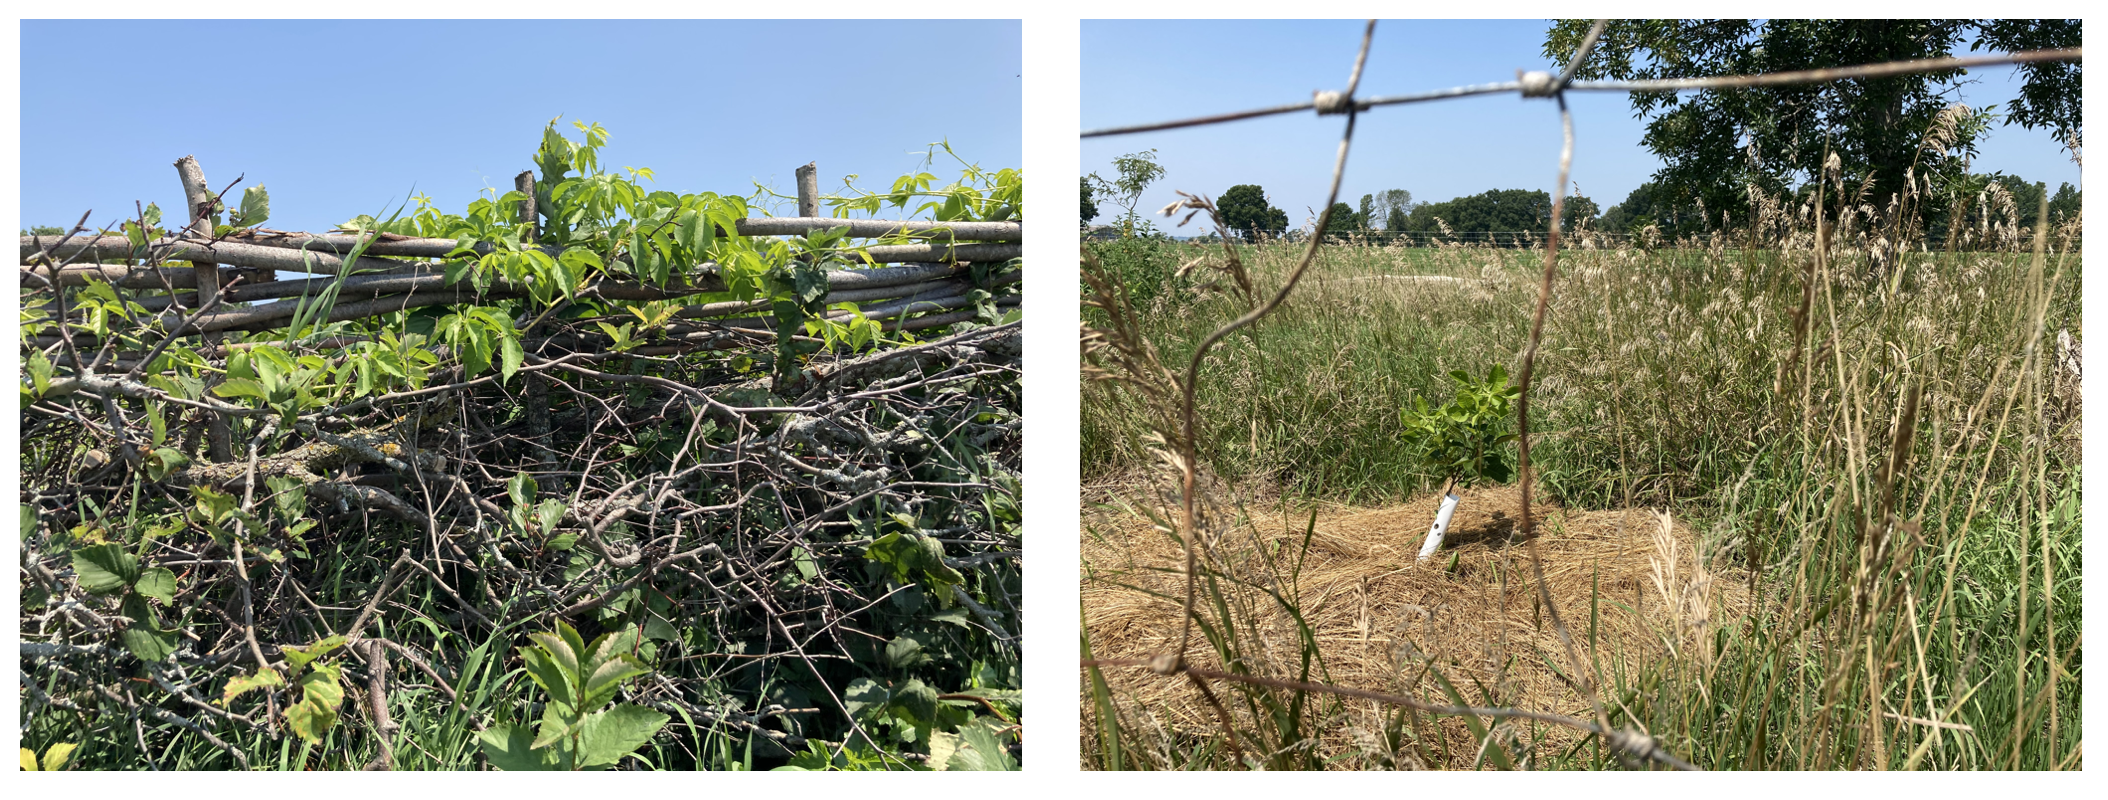 two views of grass and plants on a farm